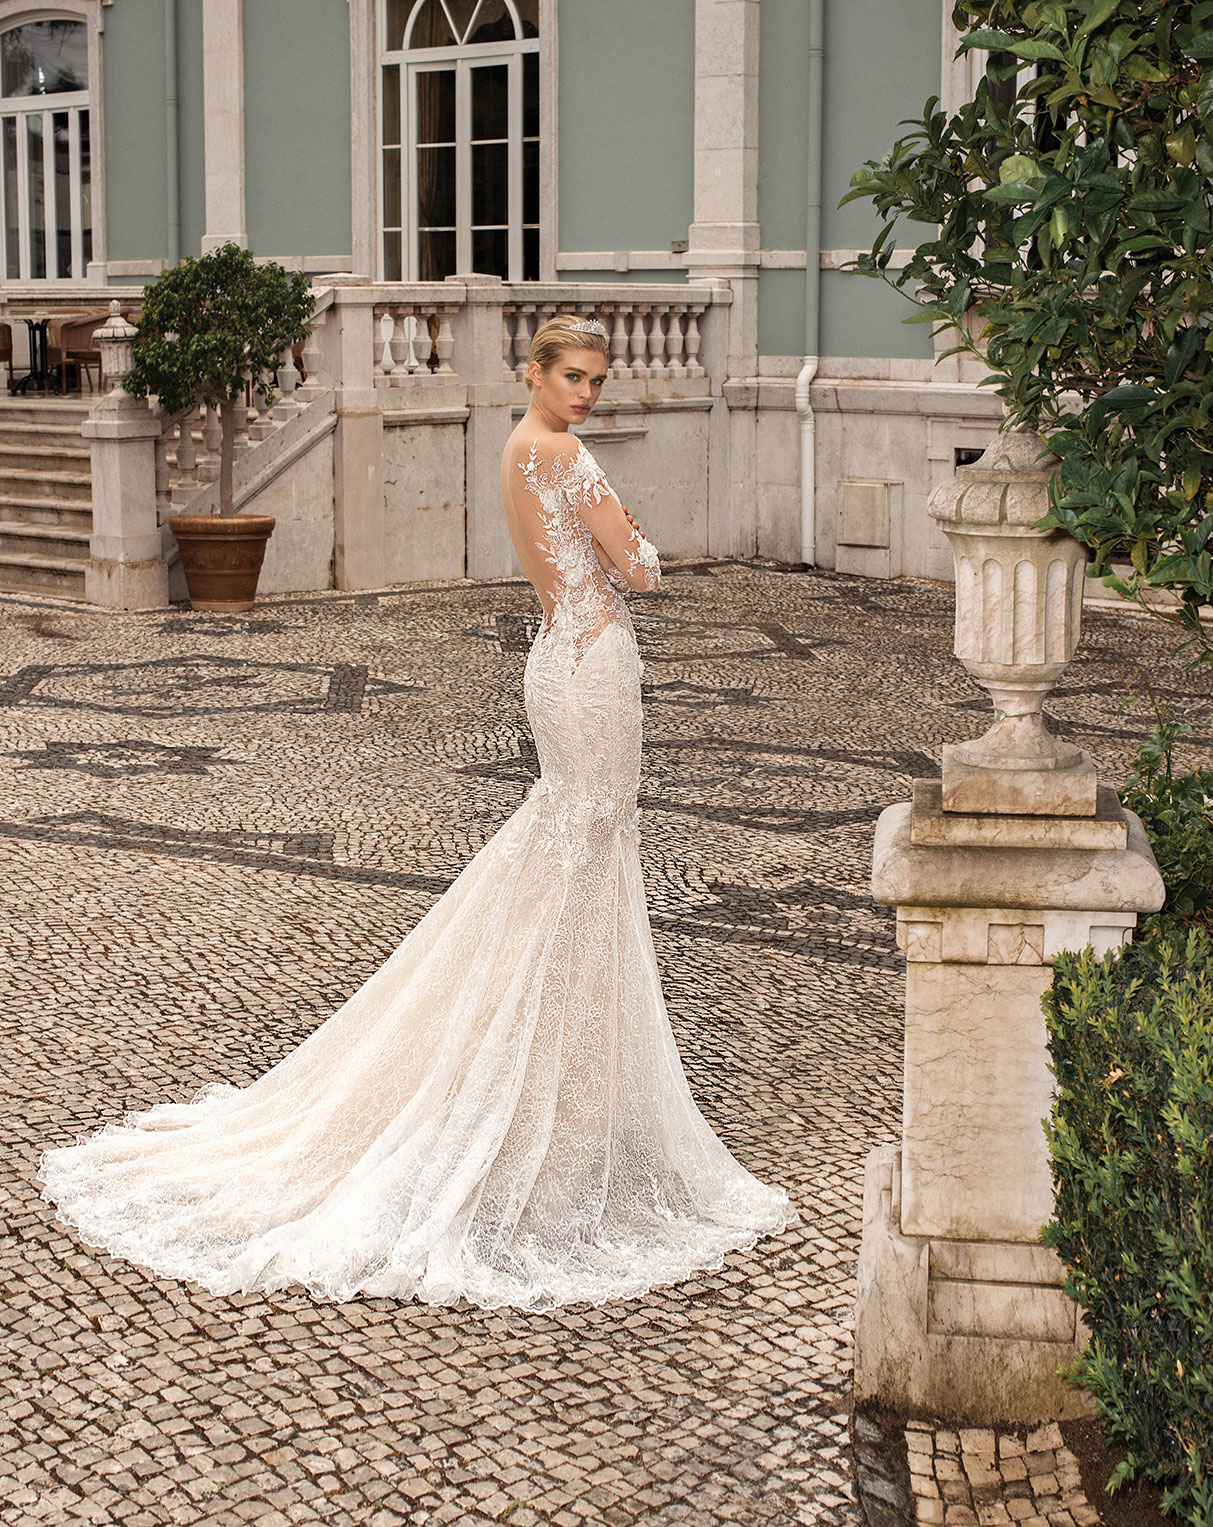 Galia Lahav Alegria Collection Nissa wedding dress mermaid gown applique sweetheart neckline low back